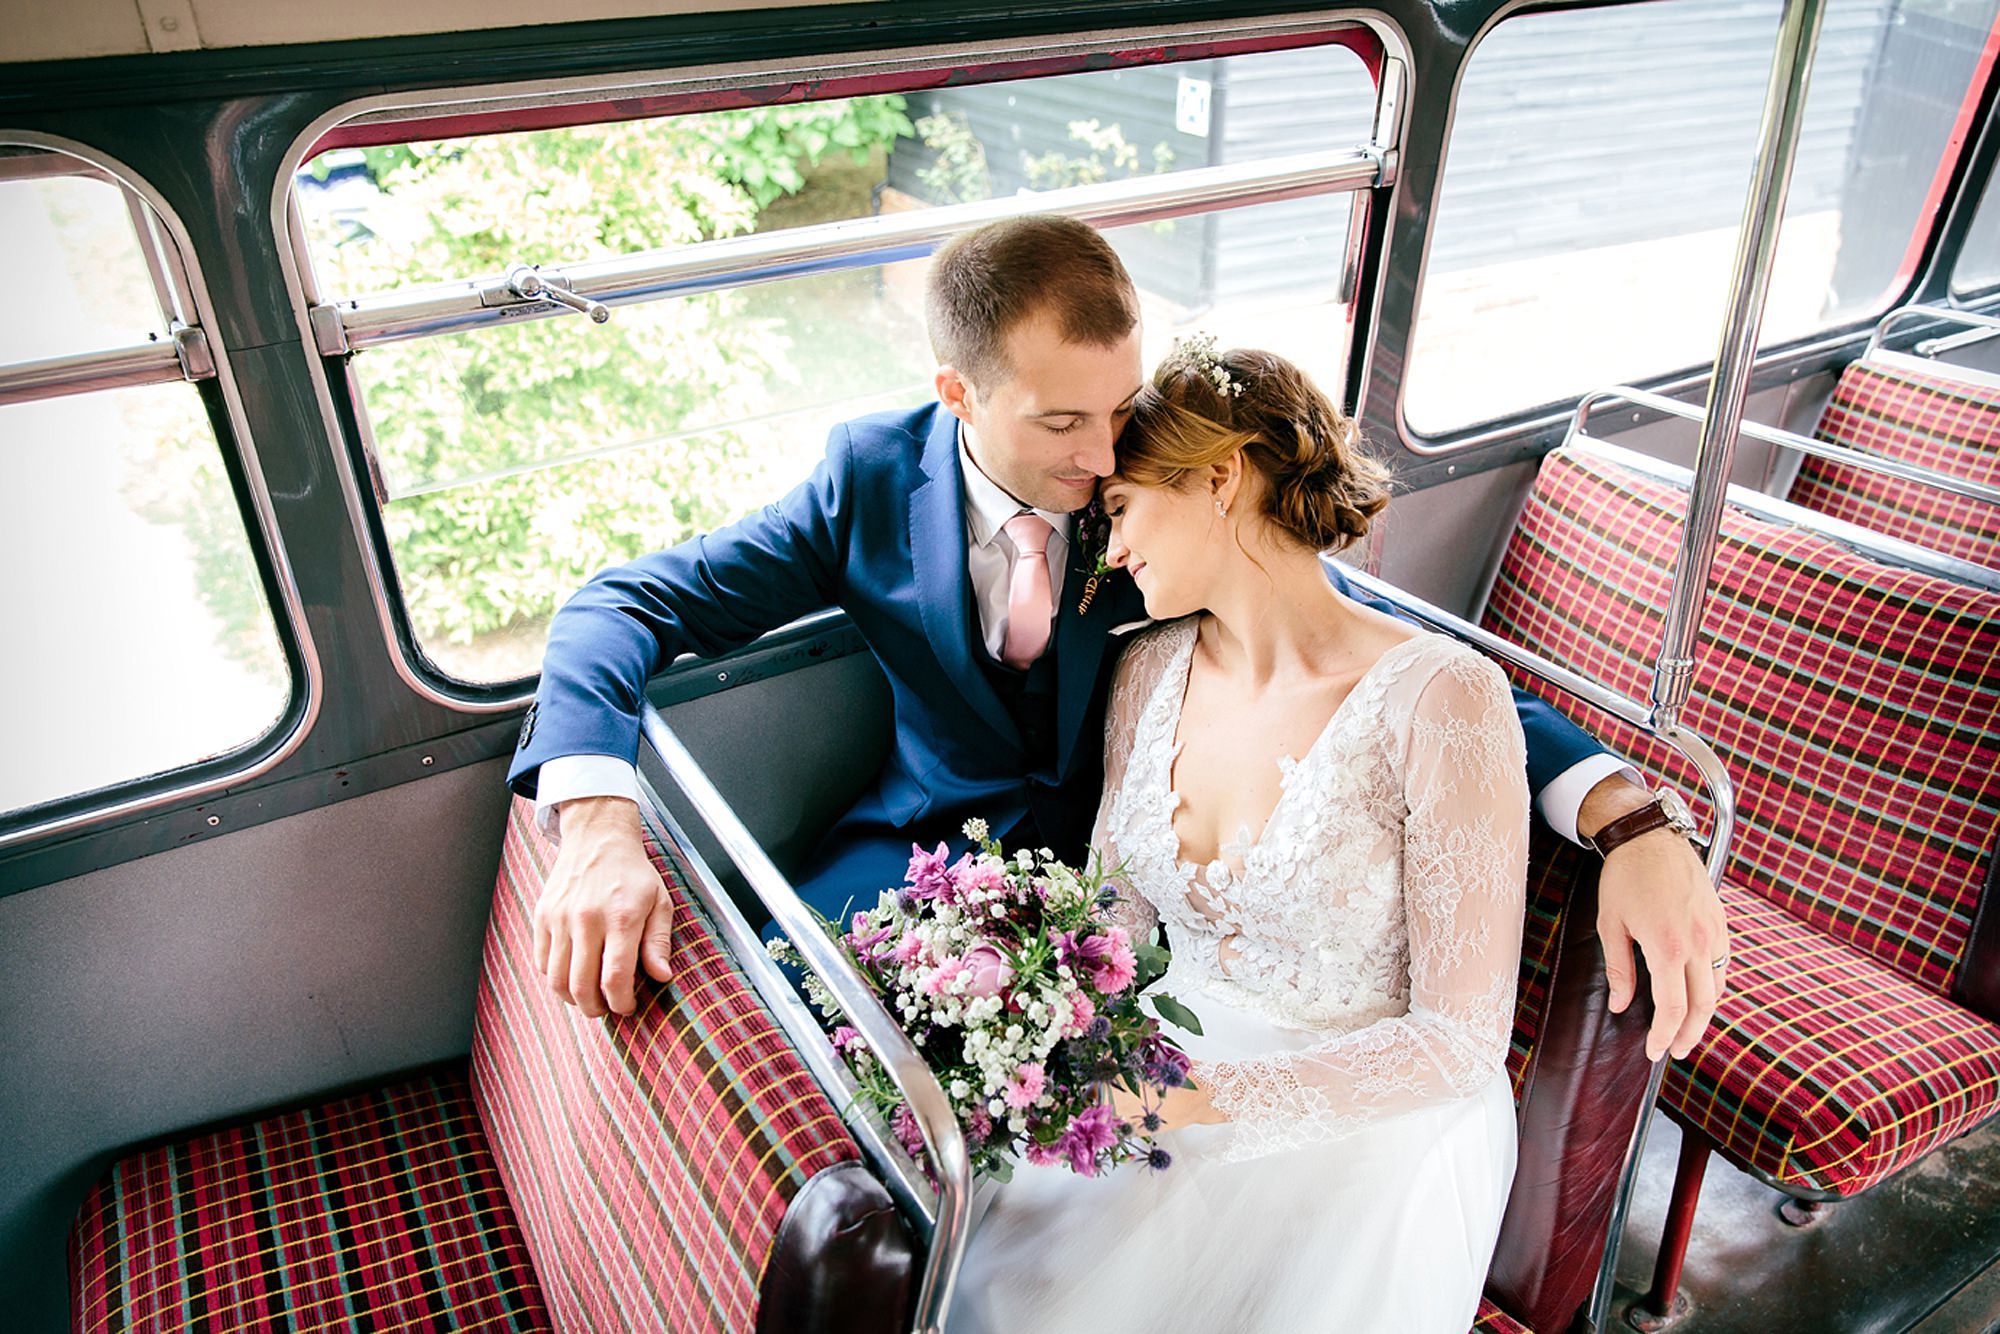 Marks Hall estate wedding photography bride and groom in wedding bus